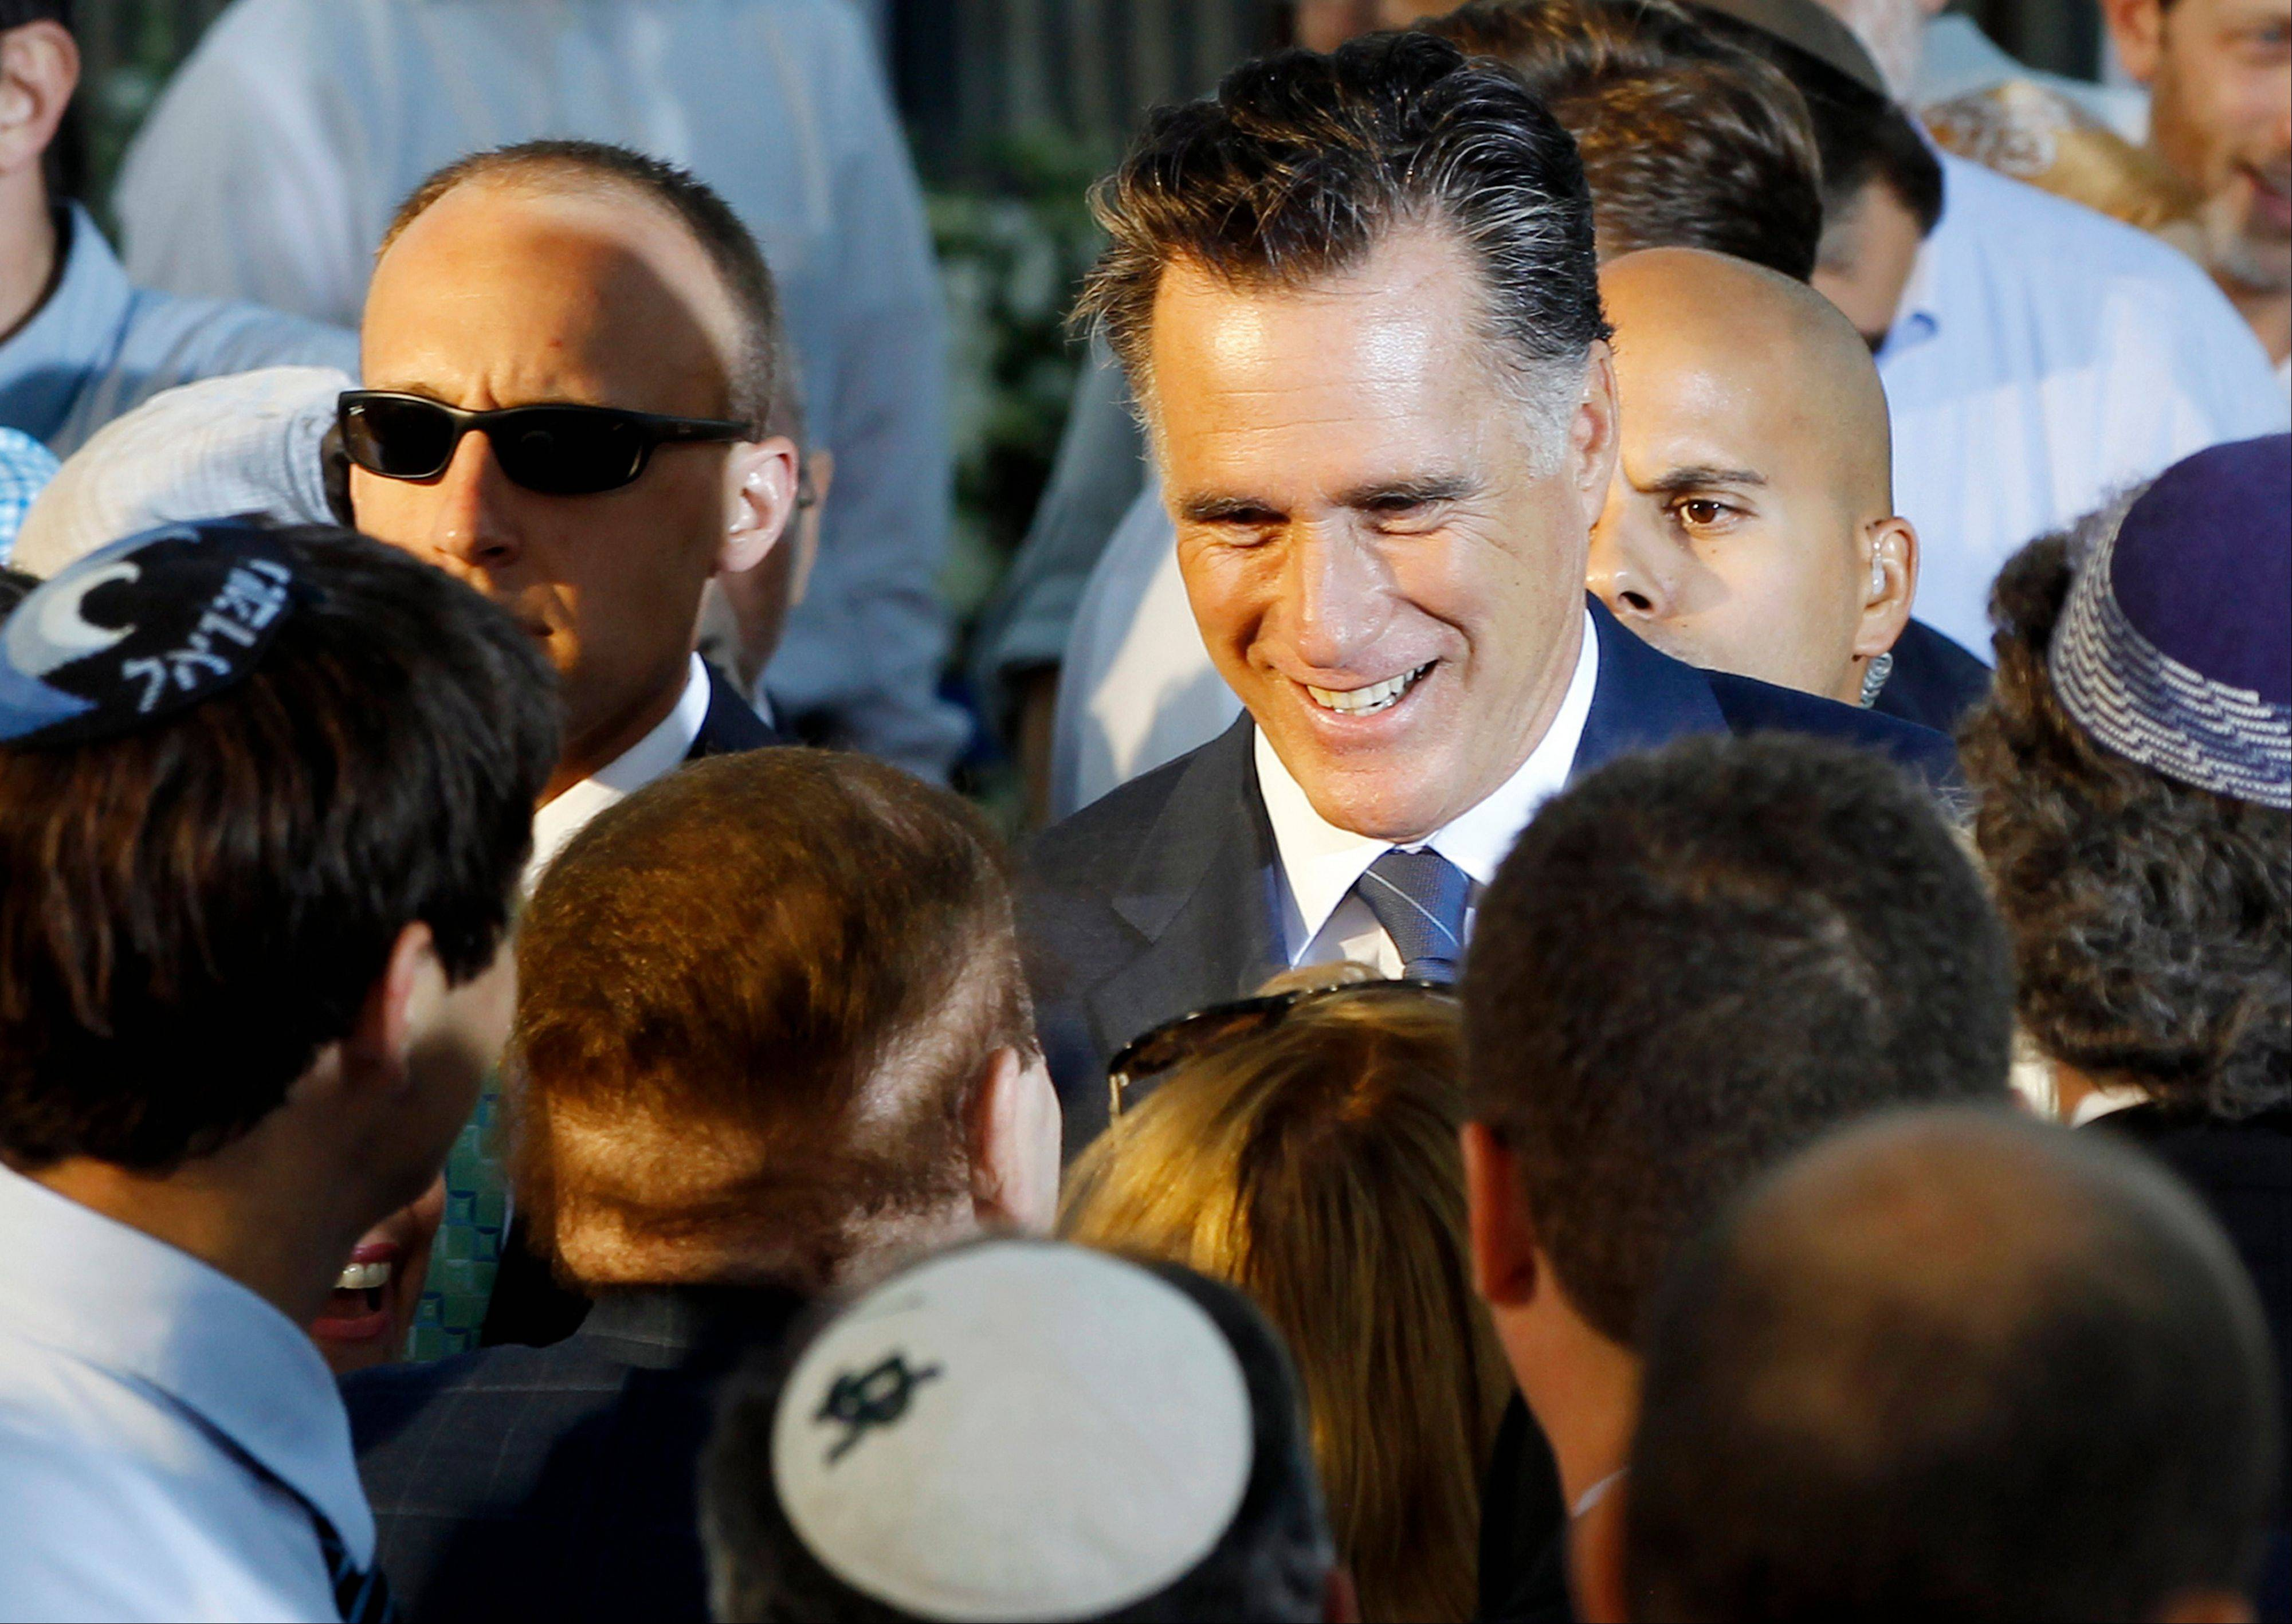 Republican presidential candidate and former Massachusetts Gov. Mitt Romney talks to American businessman Sheldon Adelson, who has said he will donate millions to Romney�s campaign, after he delivered a speech in Jerusalem, Sunday.